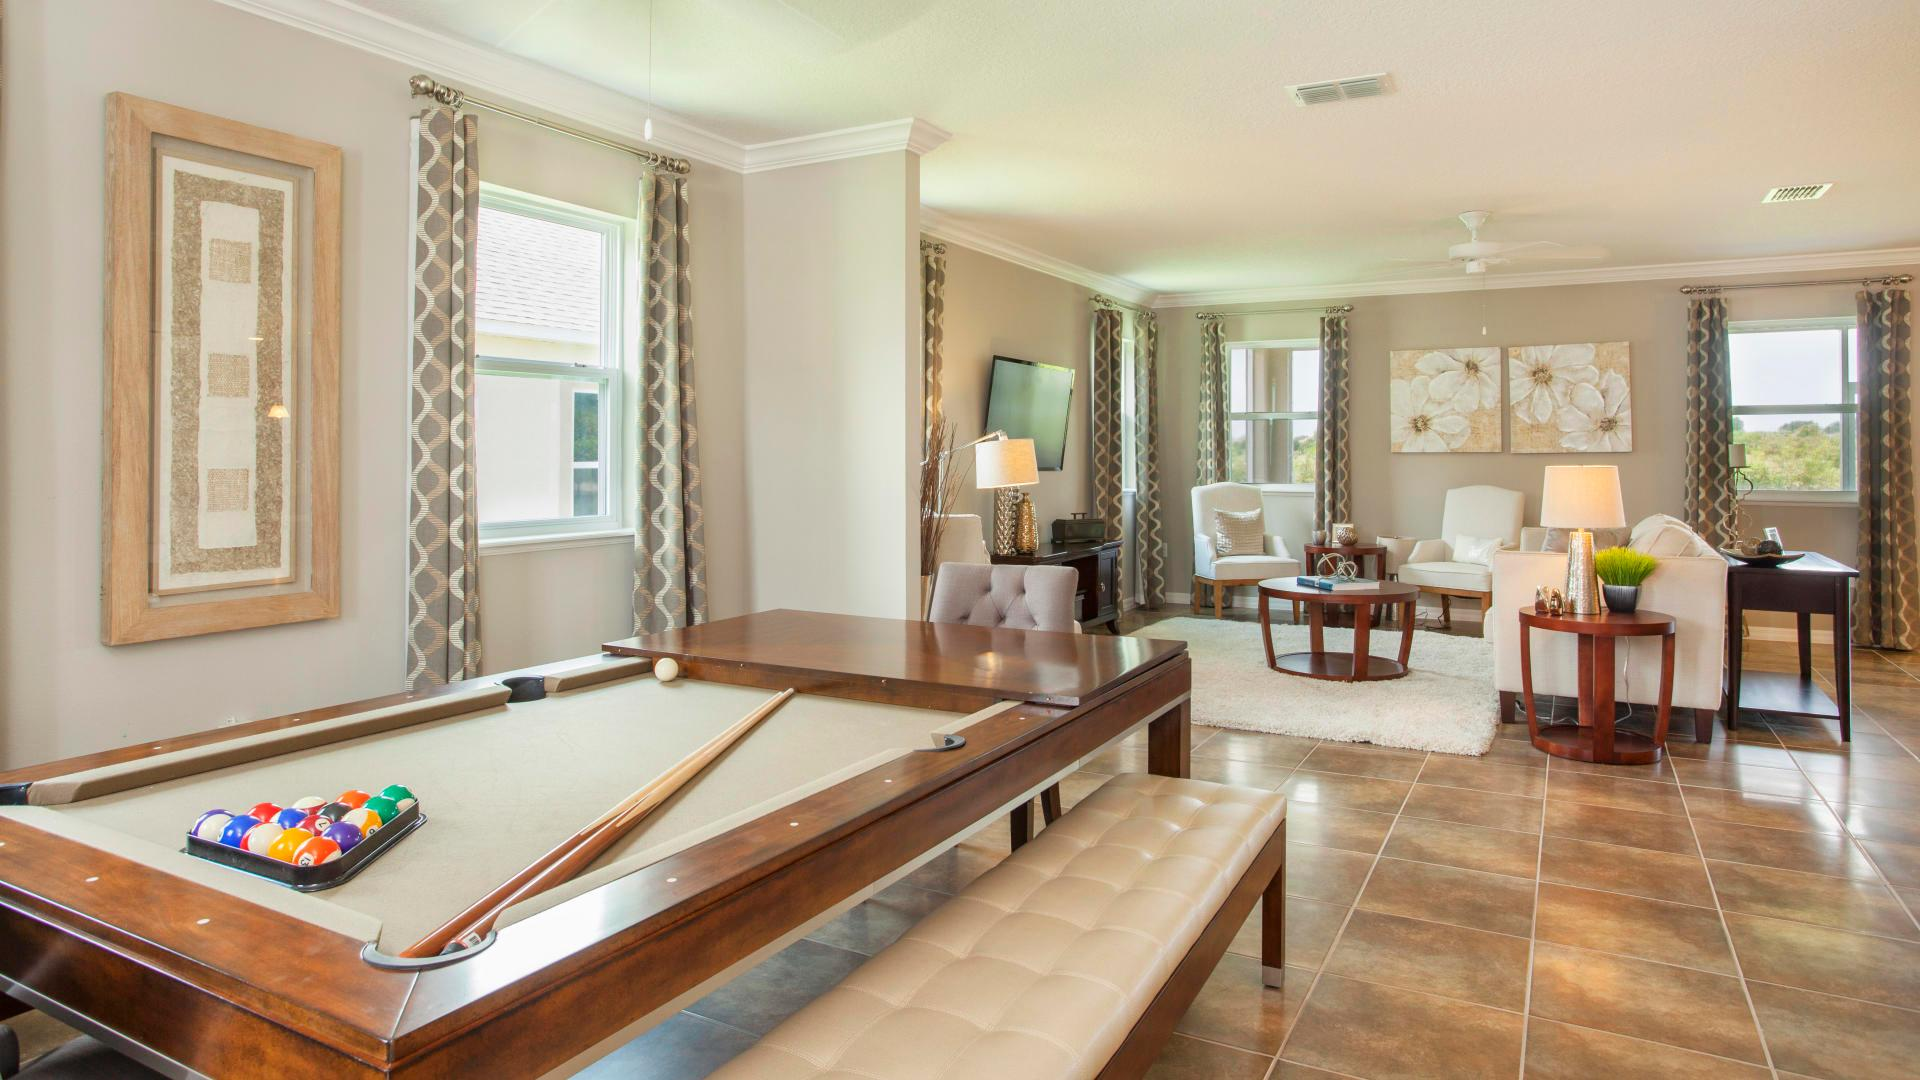 Living Area featured in the Rockford By Maronda Homes in Gainesville, FL